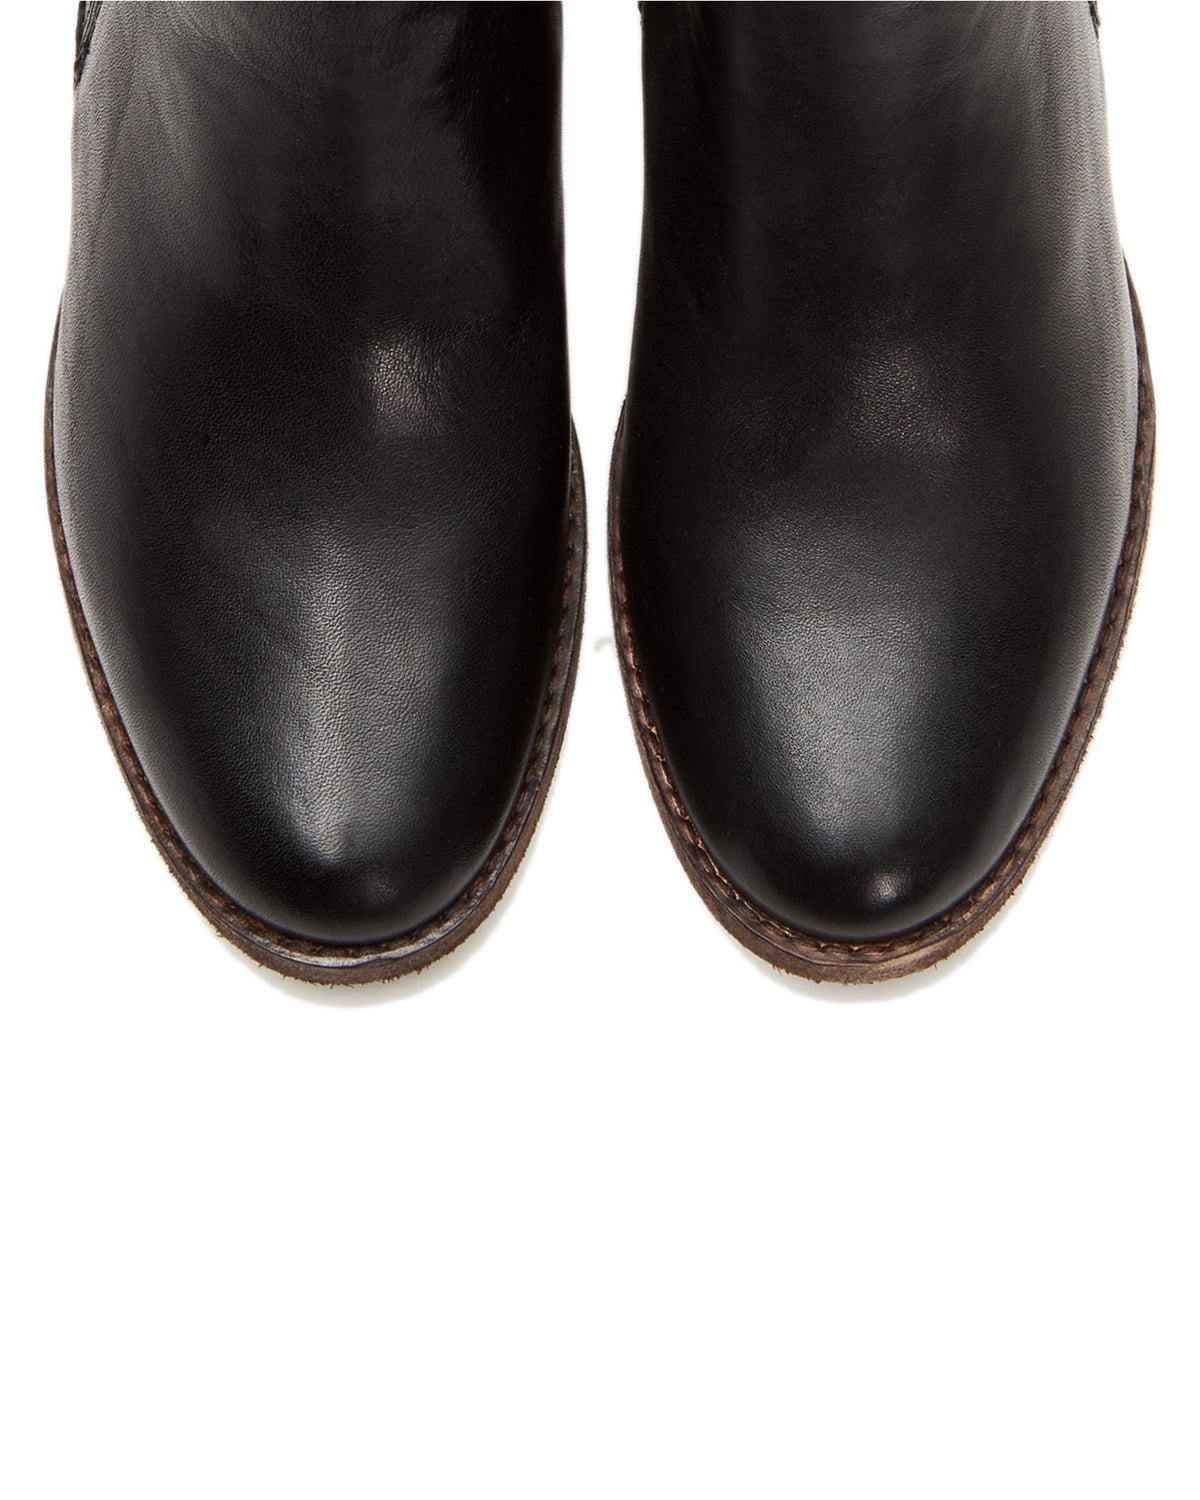 The Frye Company Shoes Alton Chelsea in Black